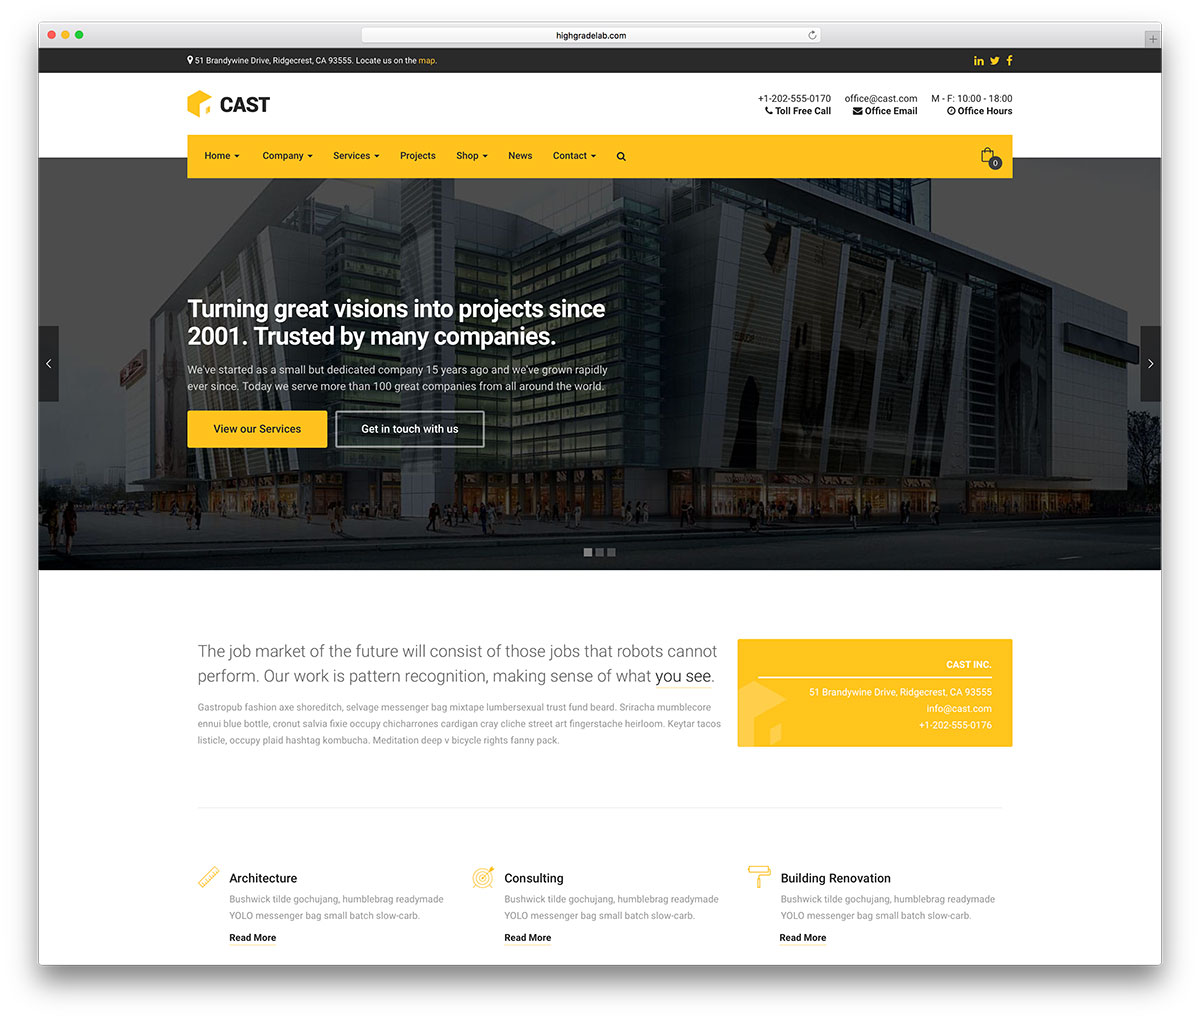 46 Best Construction Company WordPress Themes 2018 - colorlib